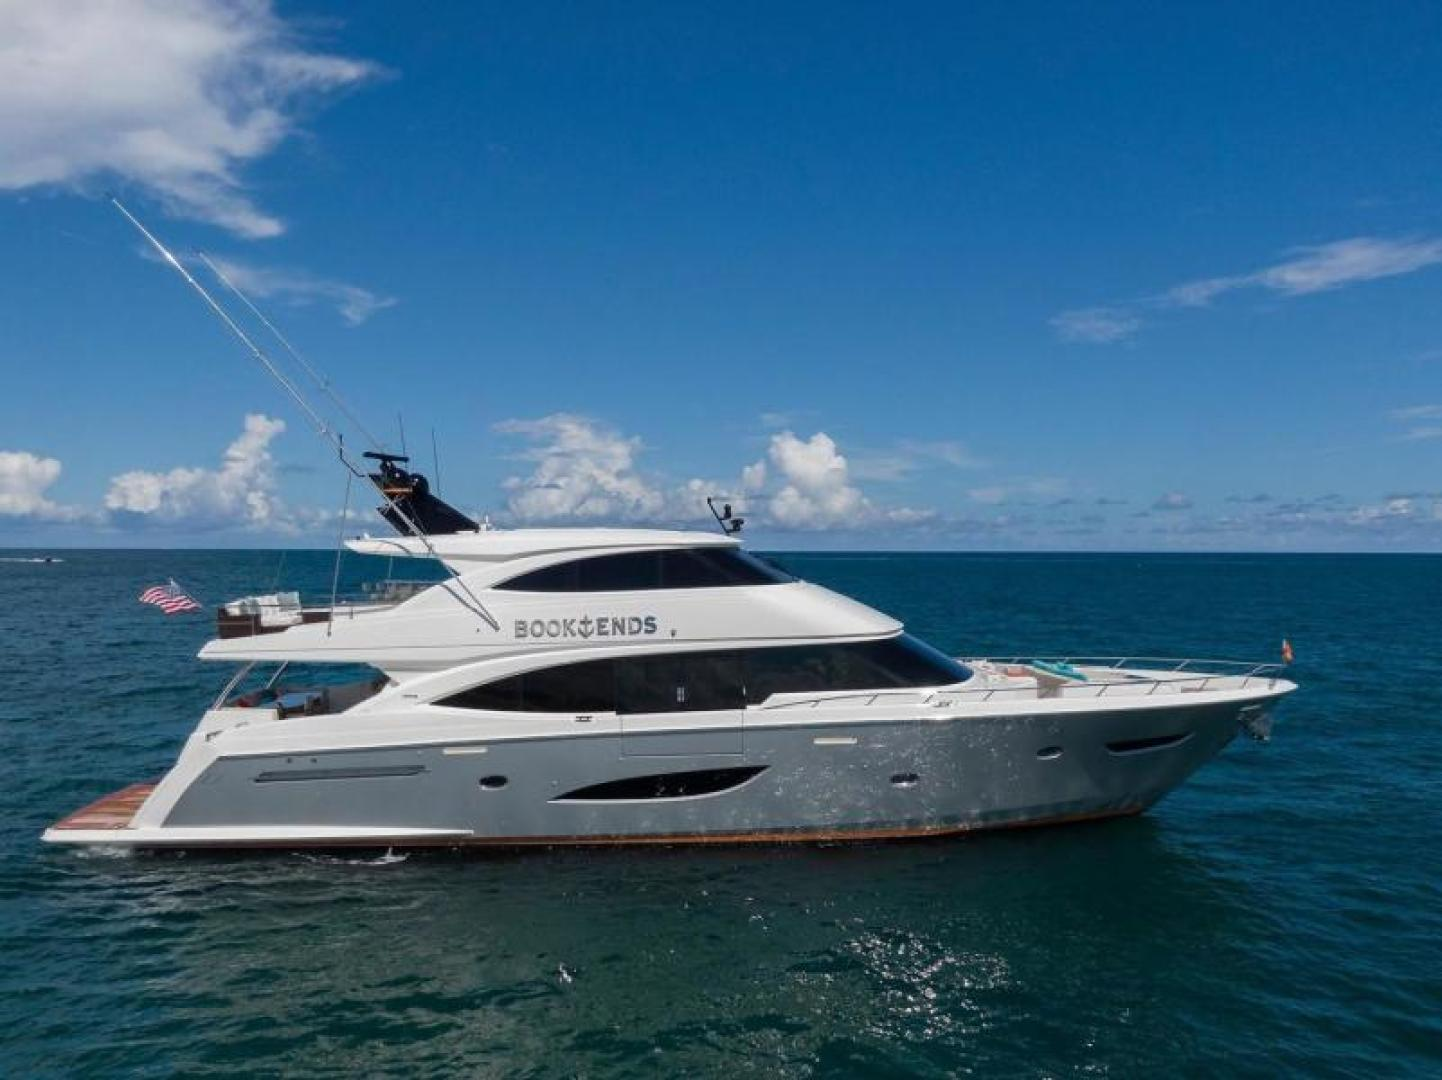 Viking-Motoryacht Enclosed Flybridge 2018-BOOK ENDS Fort Lauderdale-Florida-United States-BOOK ENDS-1470568 | Thumbnail